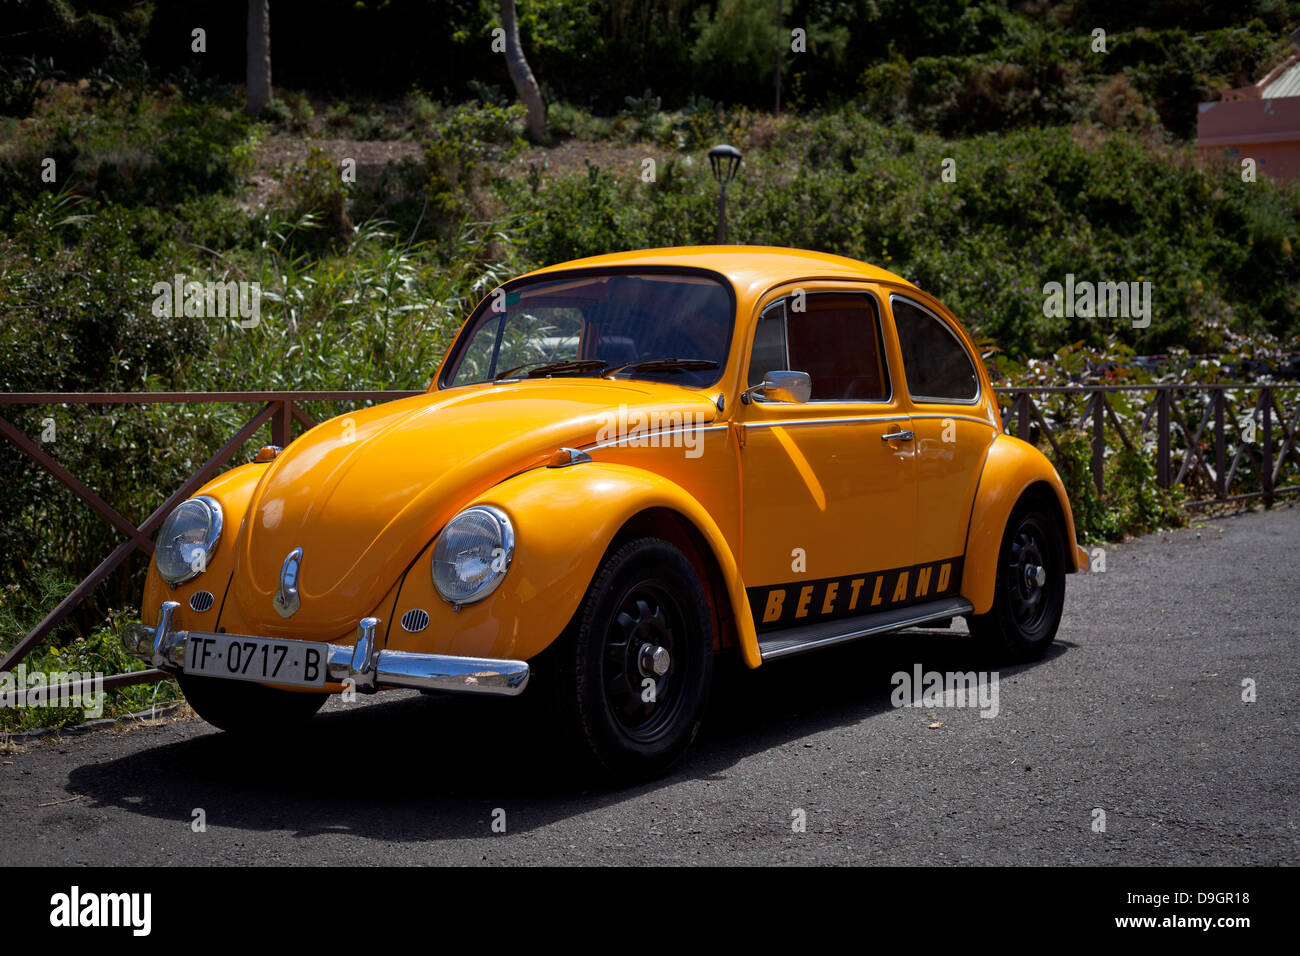 Innenausstattung New Beetle Customised Vw Beetle Stockfotos Customised Vw Beetle Bilder Alamy